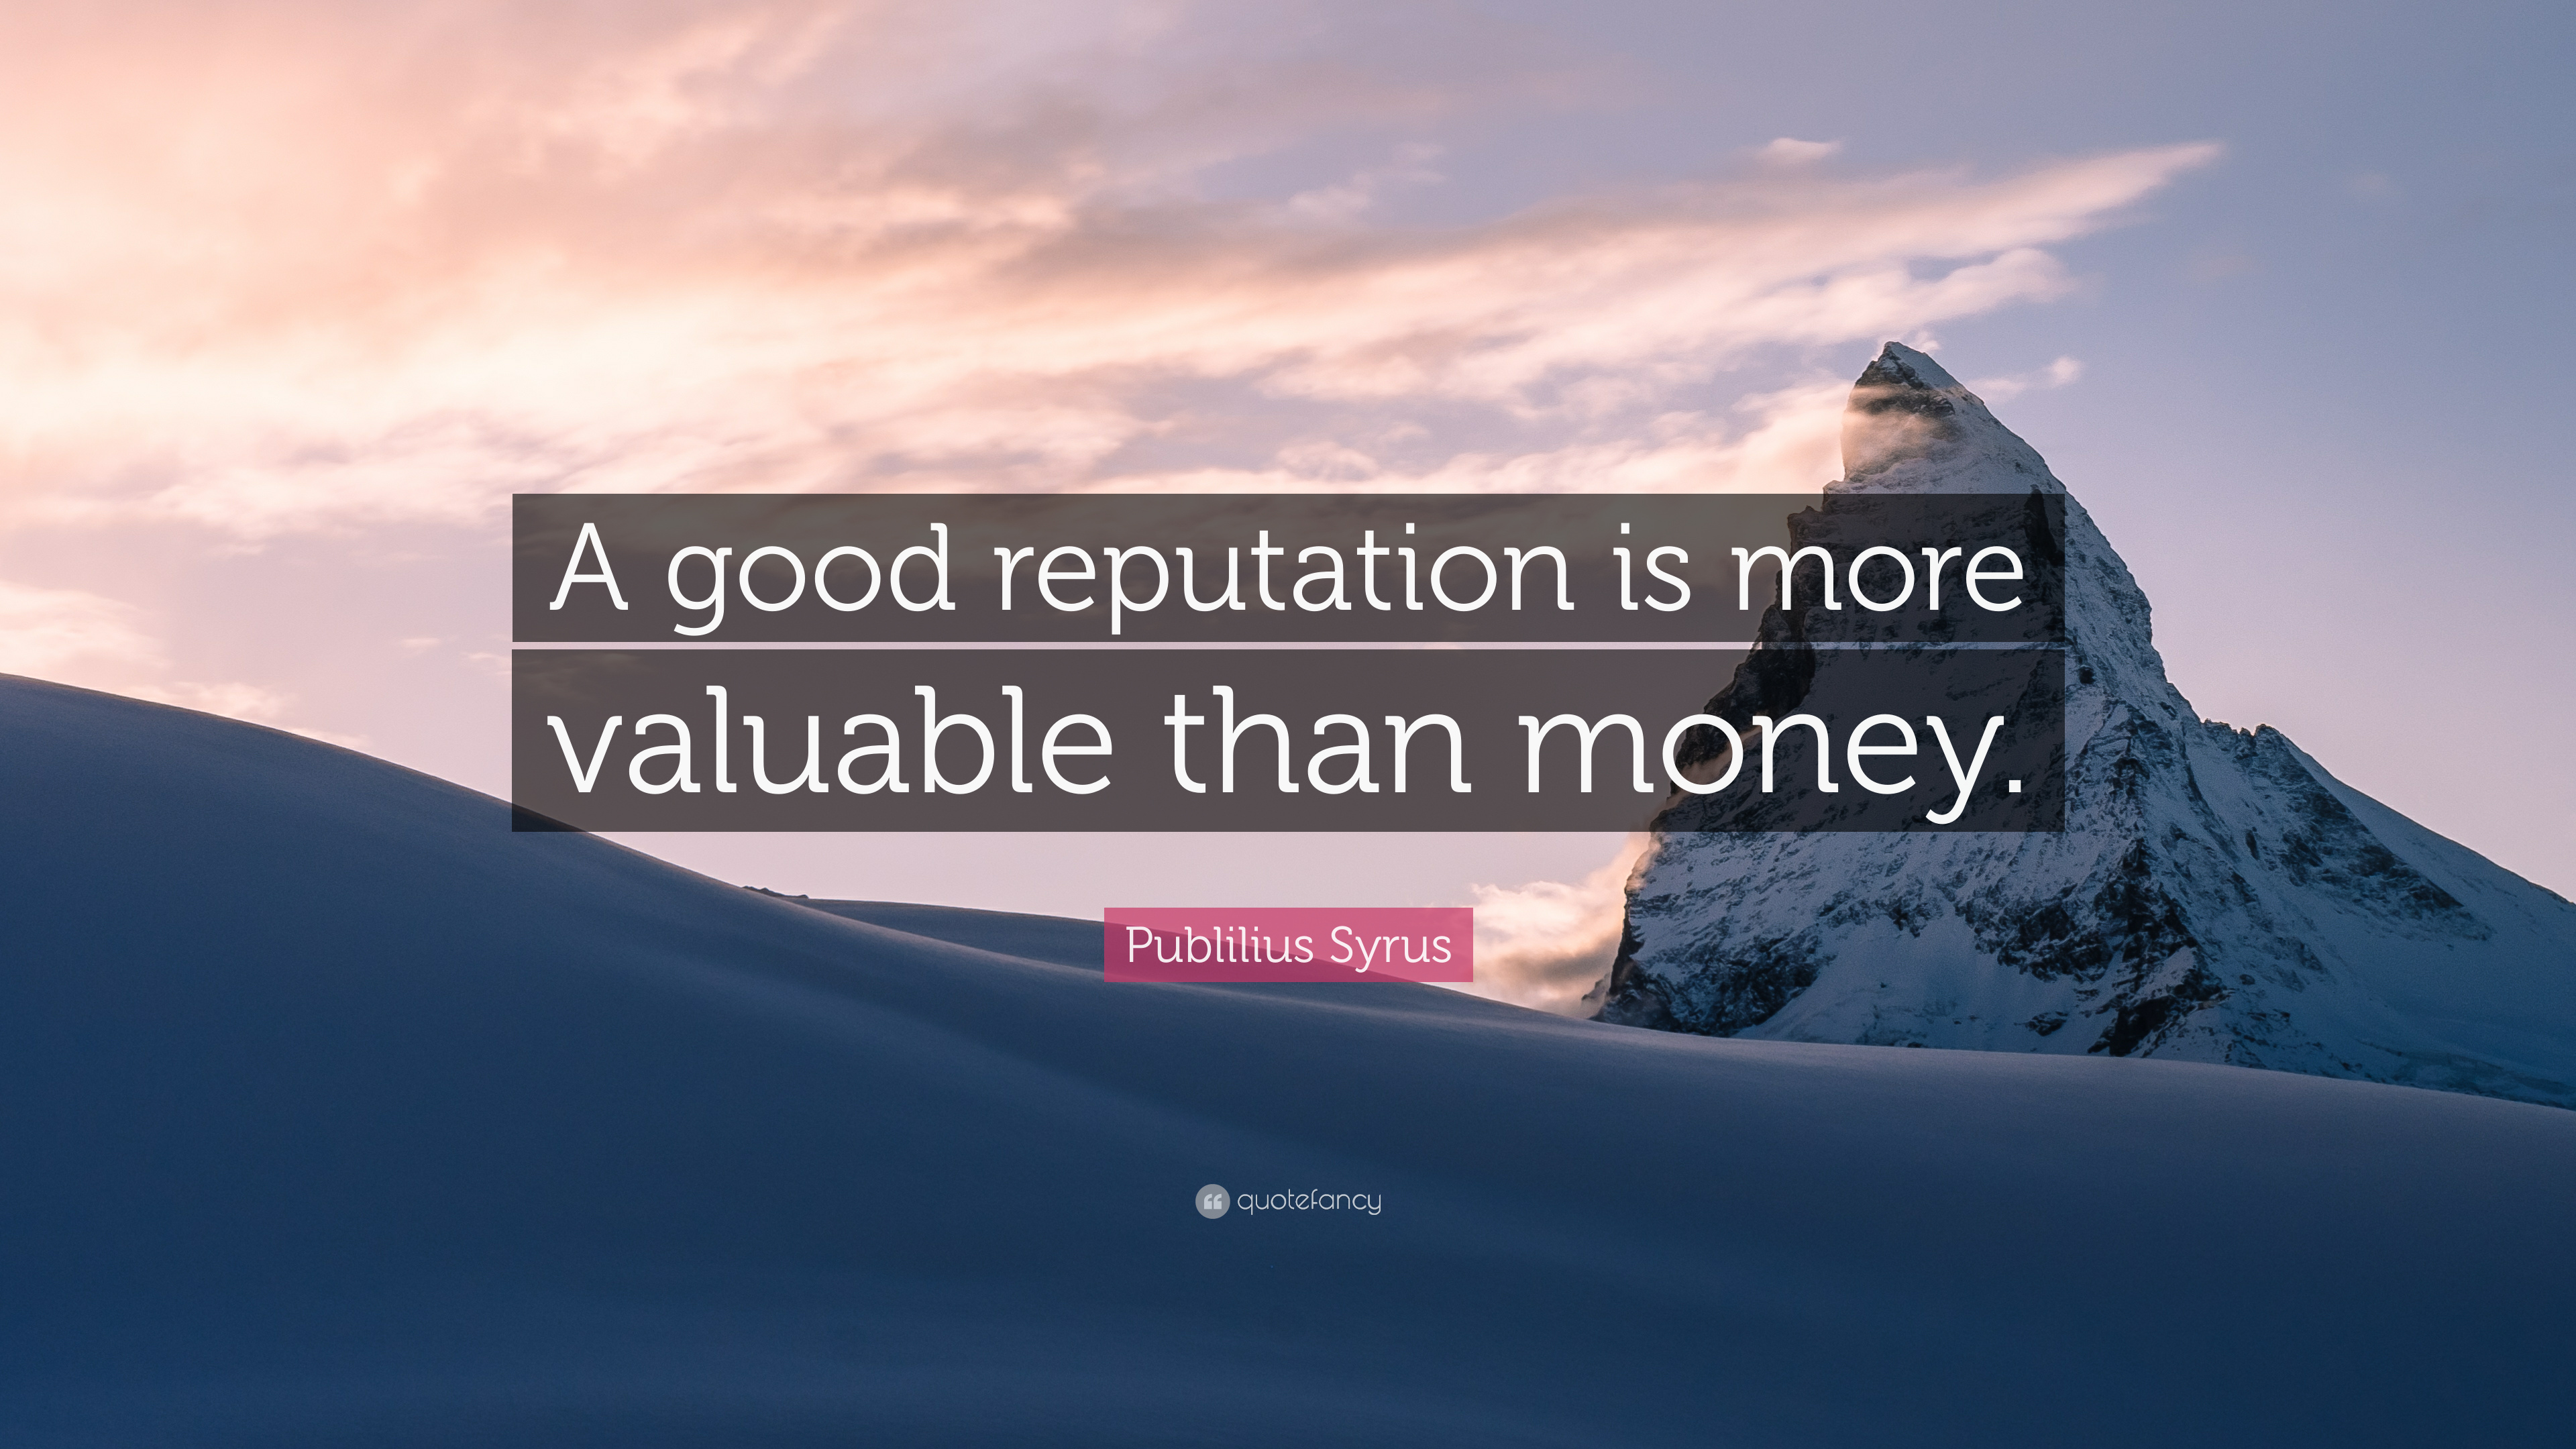 a good reputation is more valuable